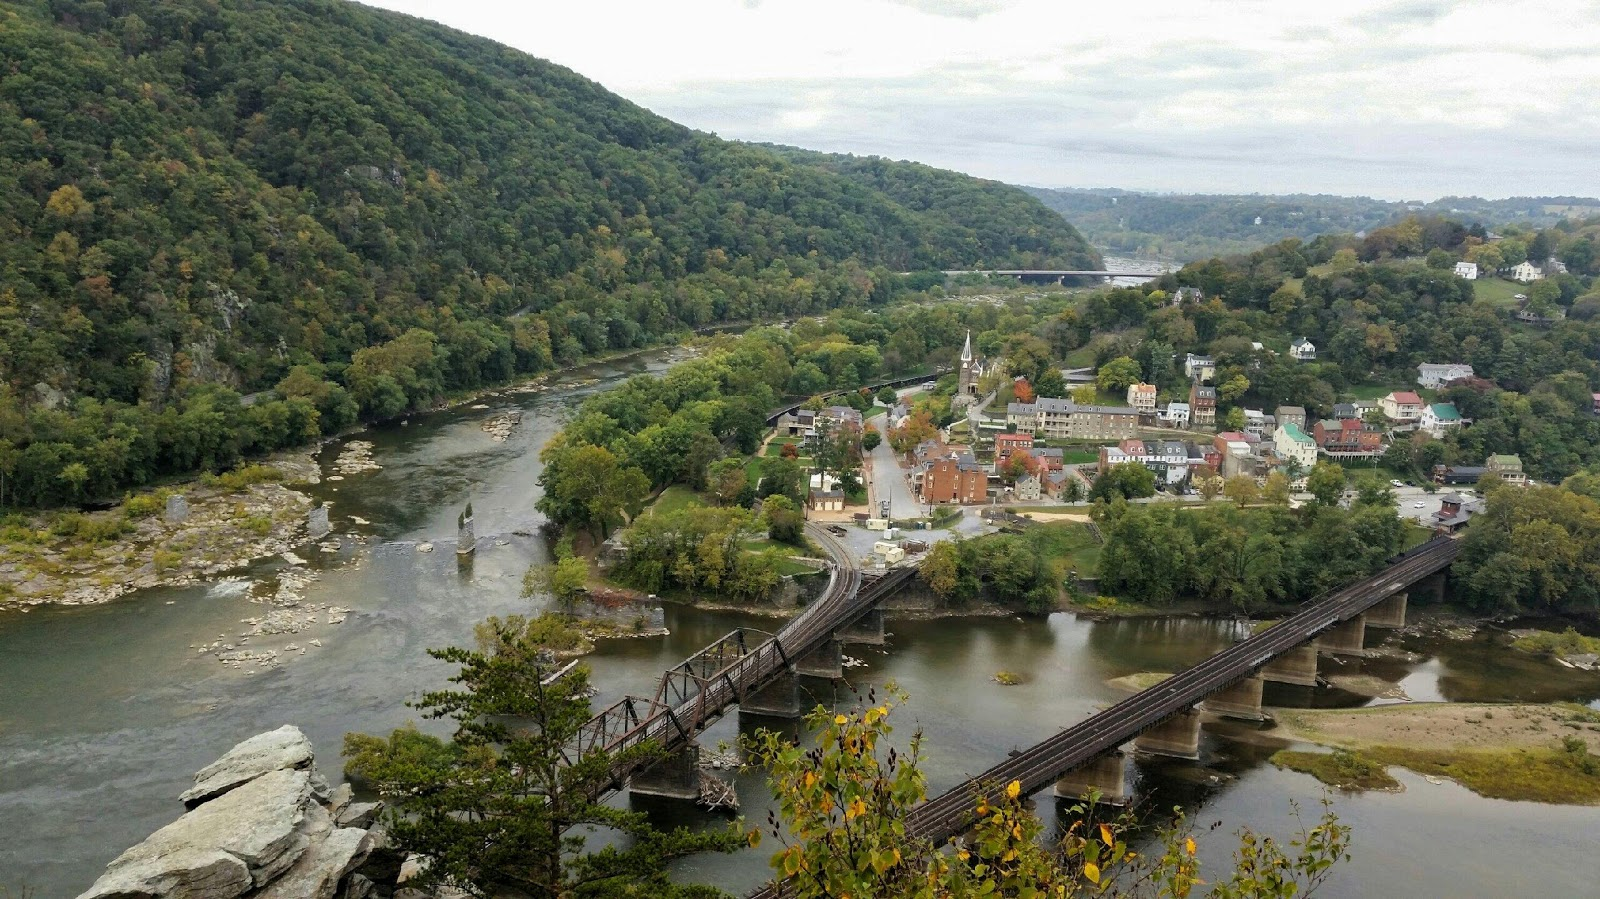 Vacation Home Rentals in West Virginia